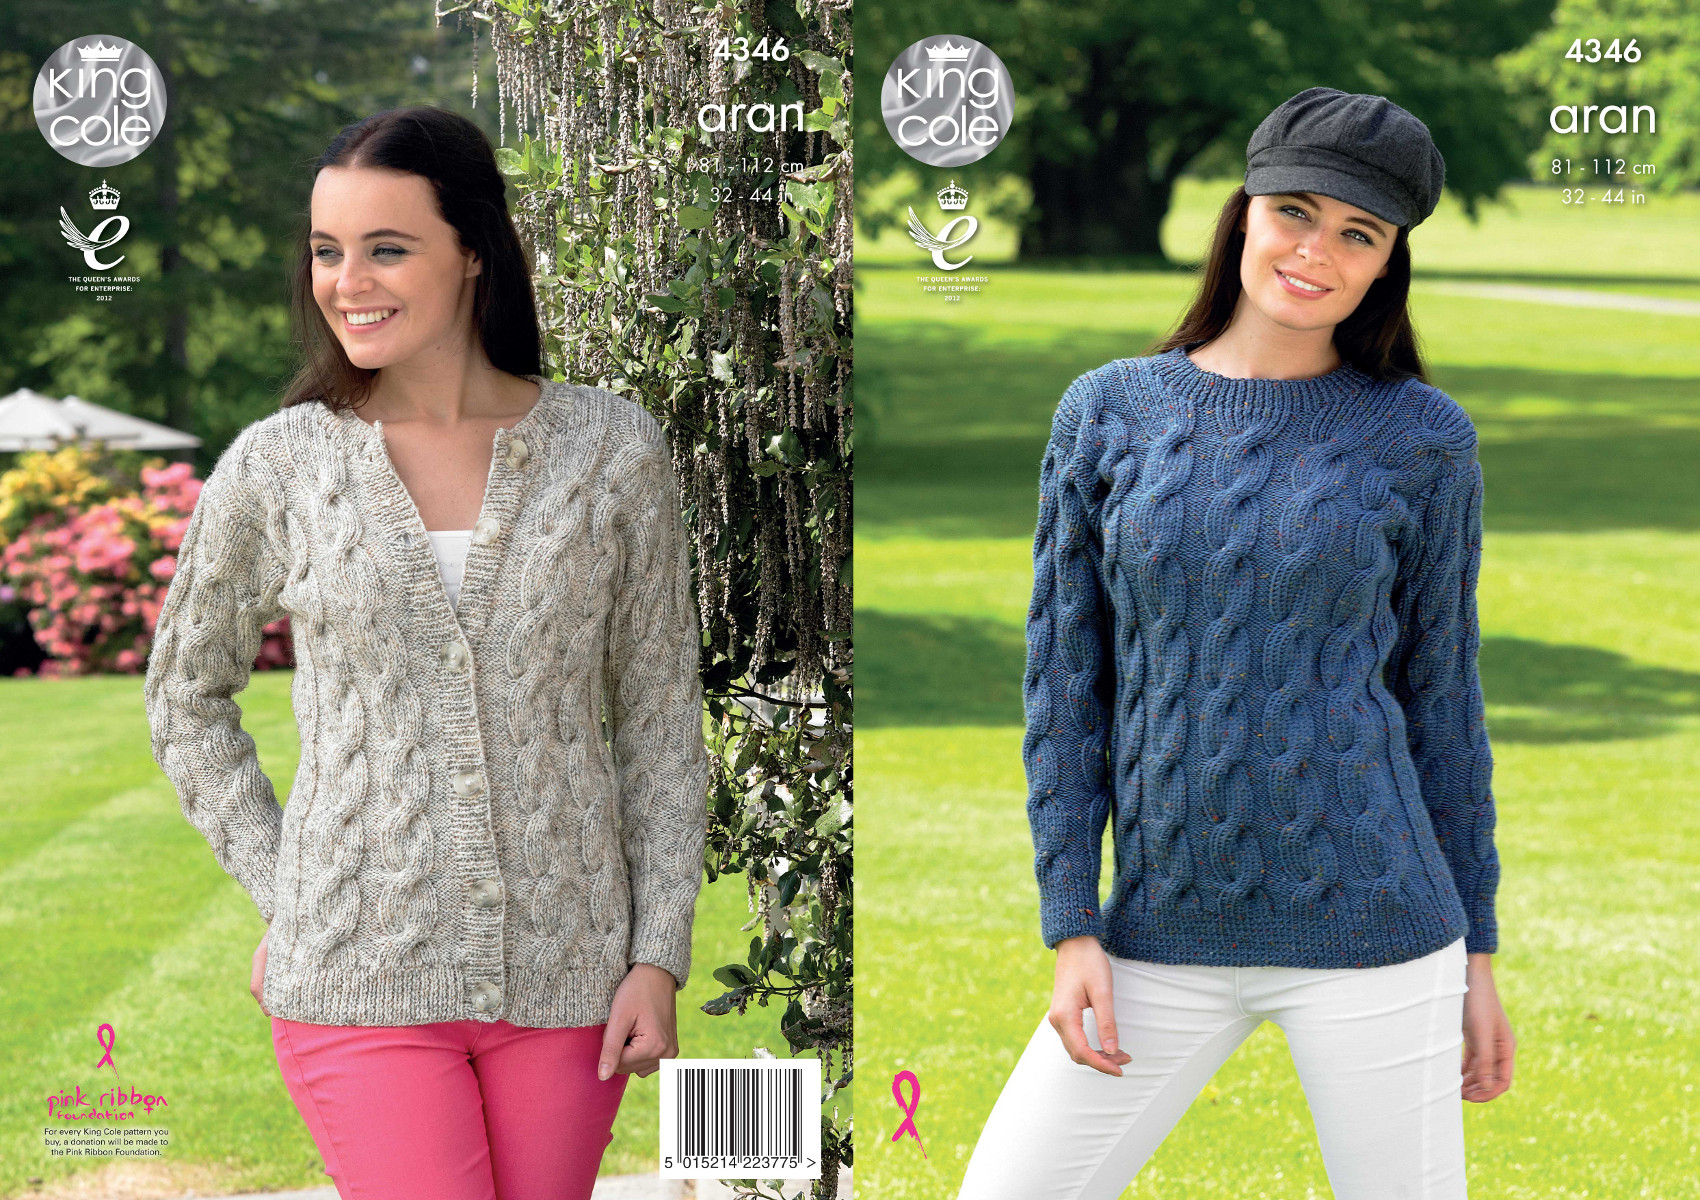 King Cole Ladies Knitting Pattern Cable Knit Sweater Cardigan ...